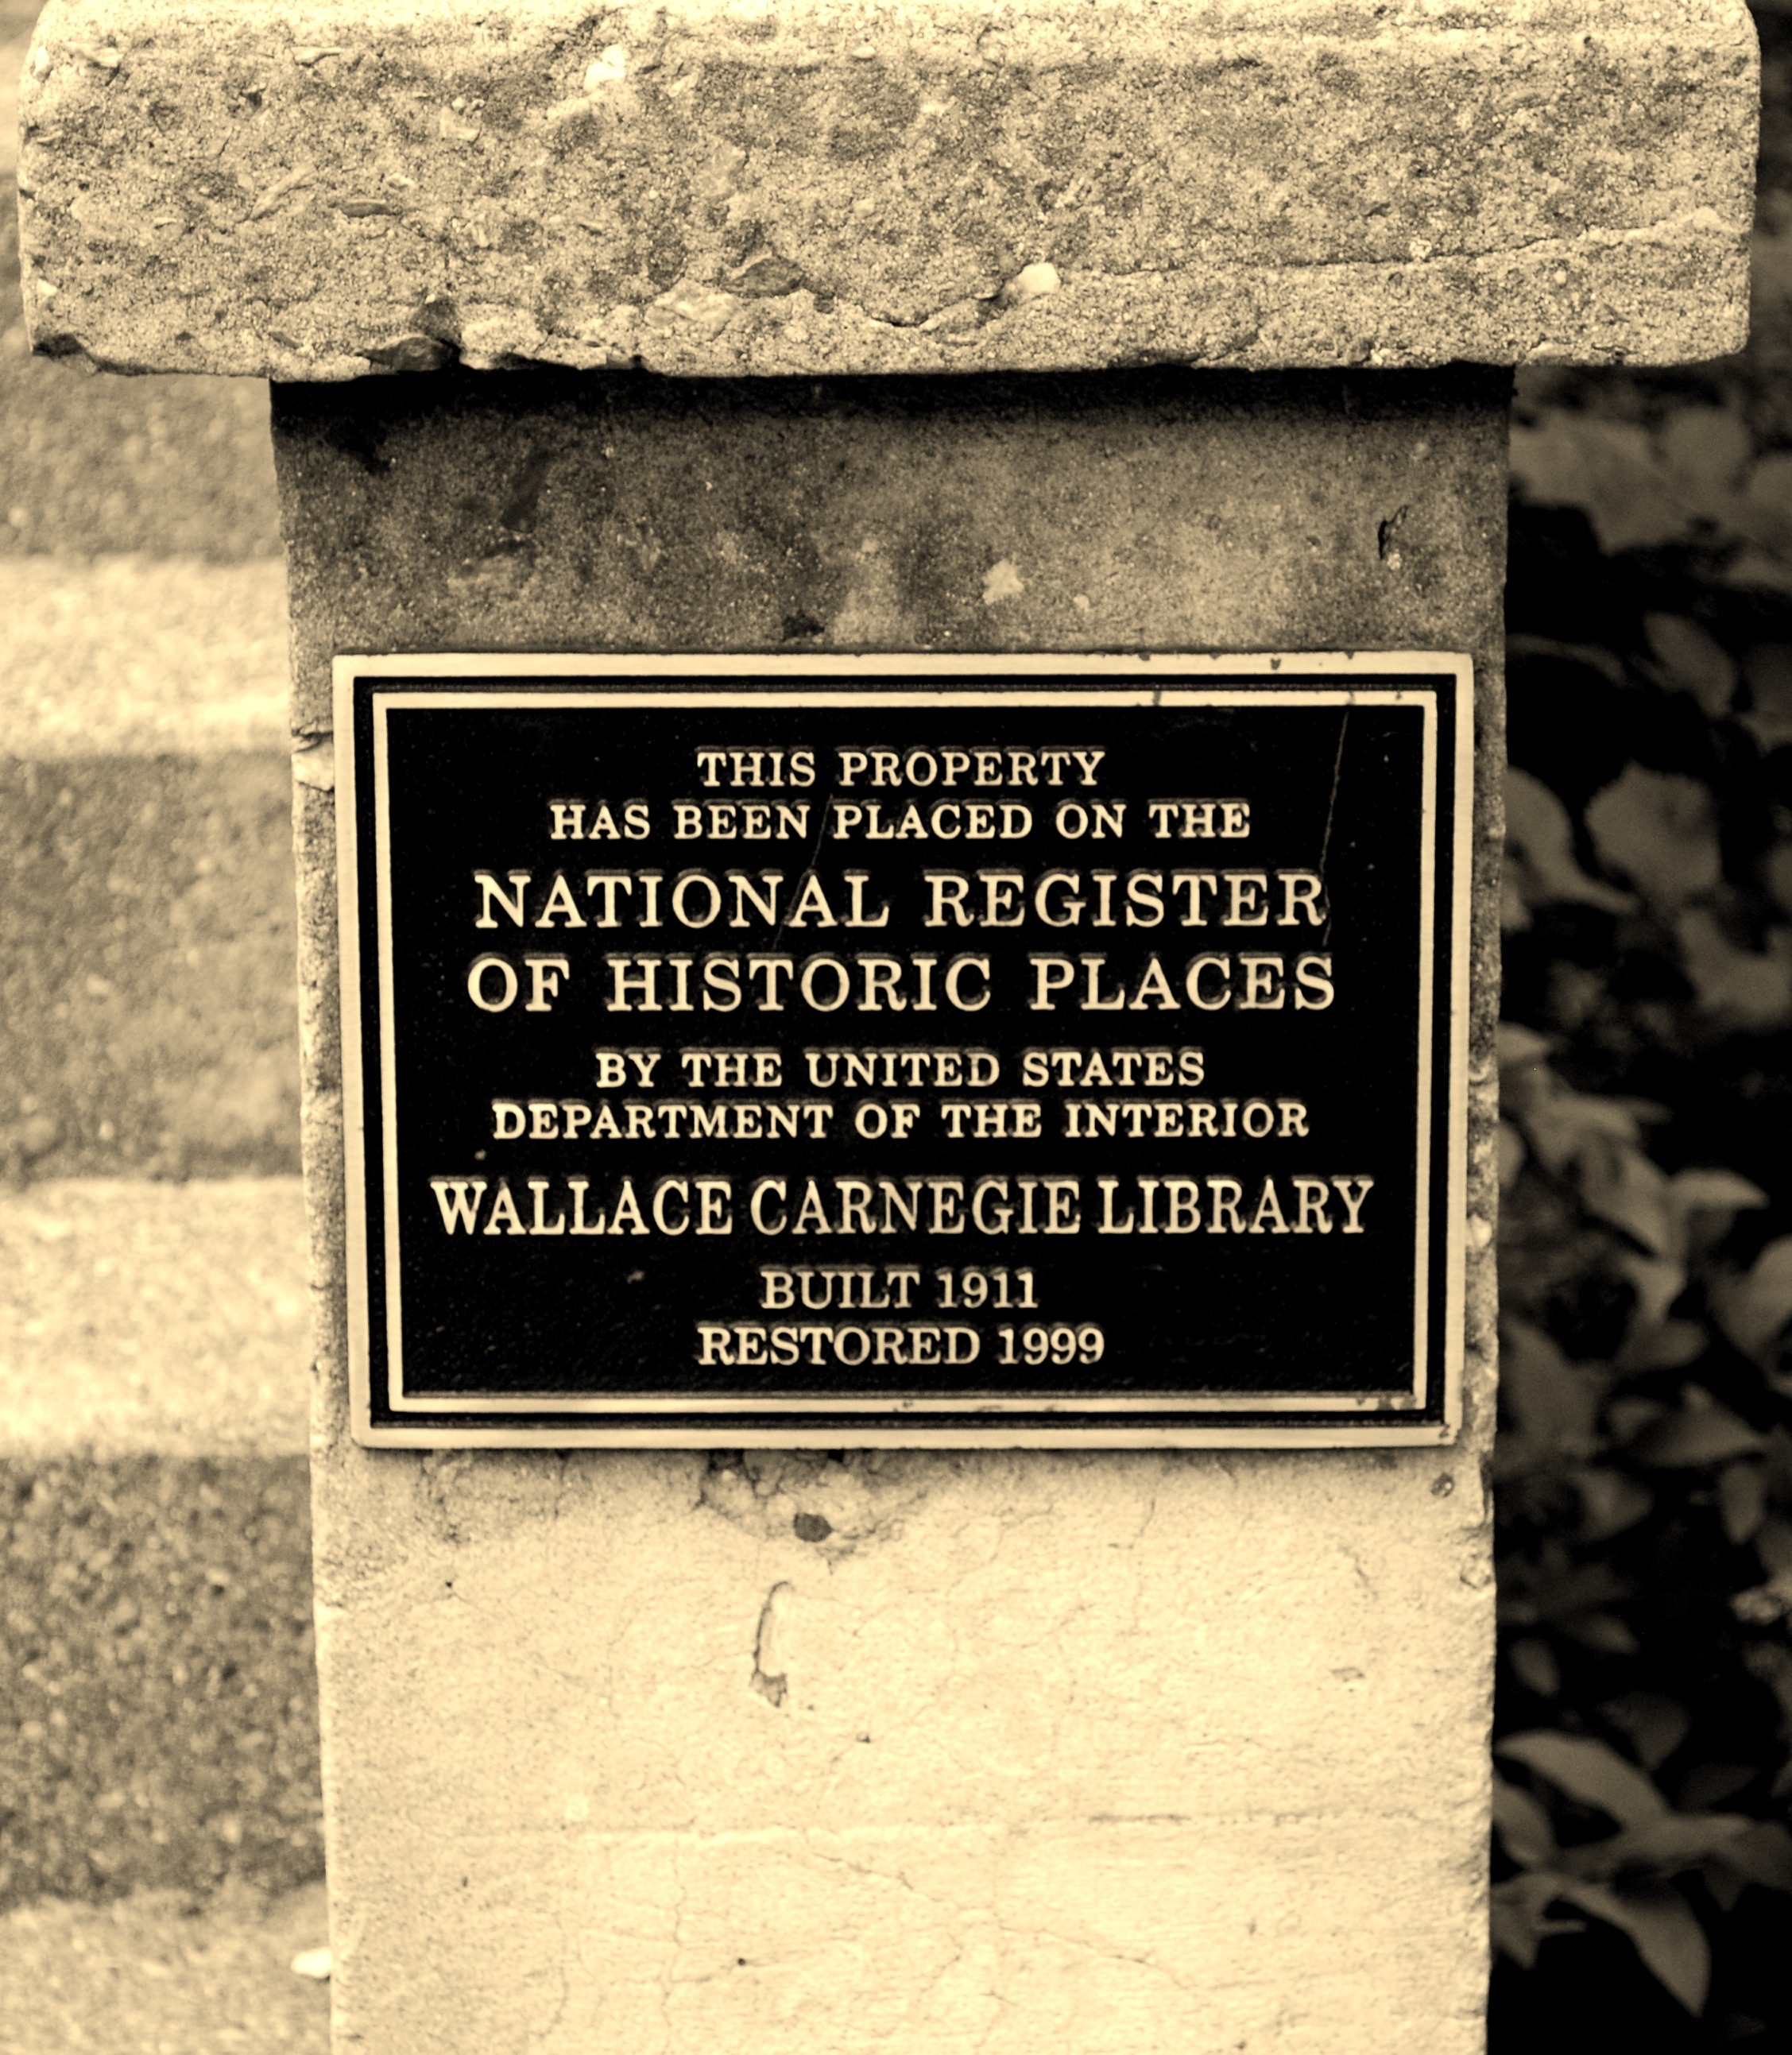 Wallace Carnegie Library